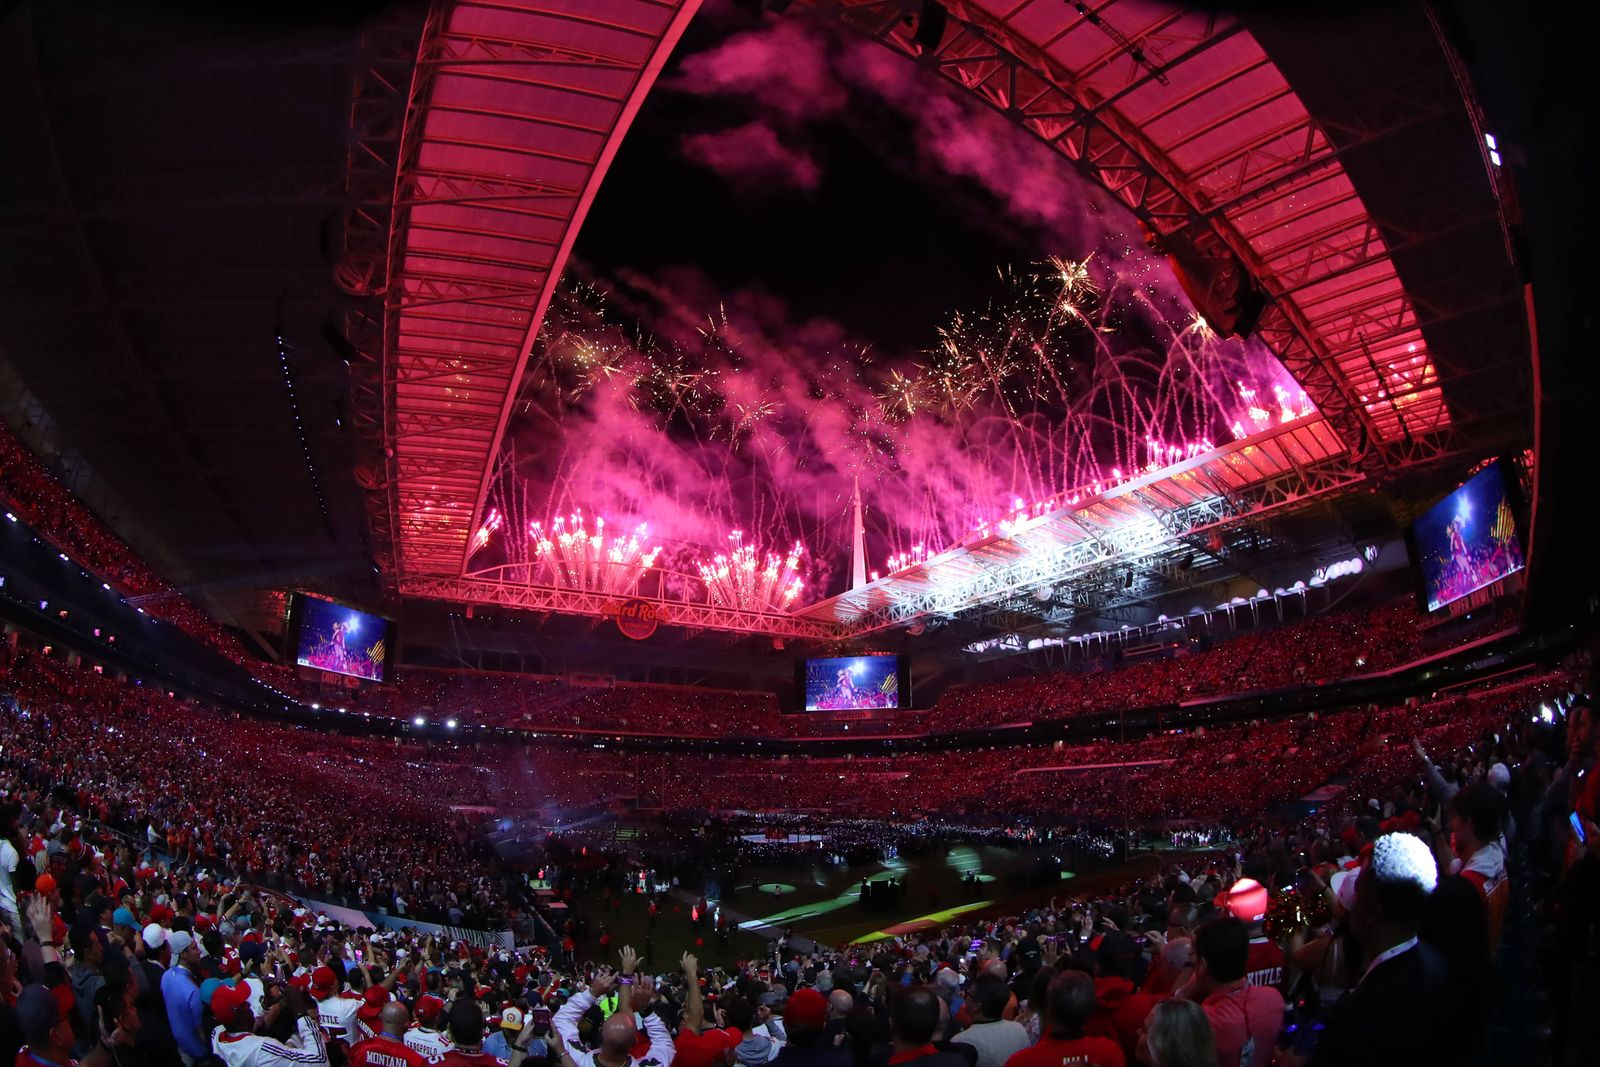 MIAMI GARDENS, FL - FEBRUARY 02: A general view of the fireworks and the Hard Rock Stadium during the Super Bowl Halfti